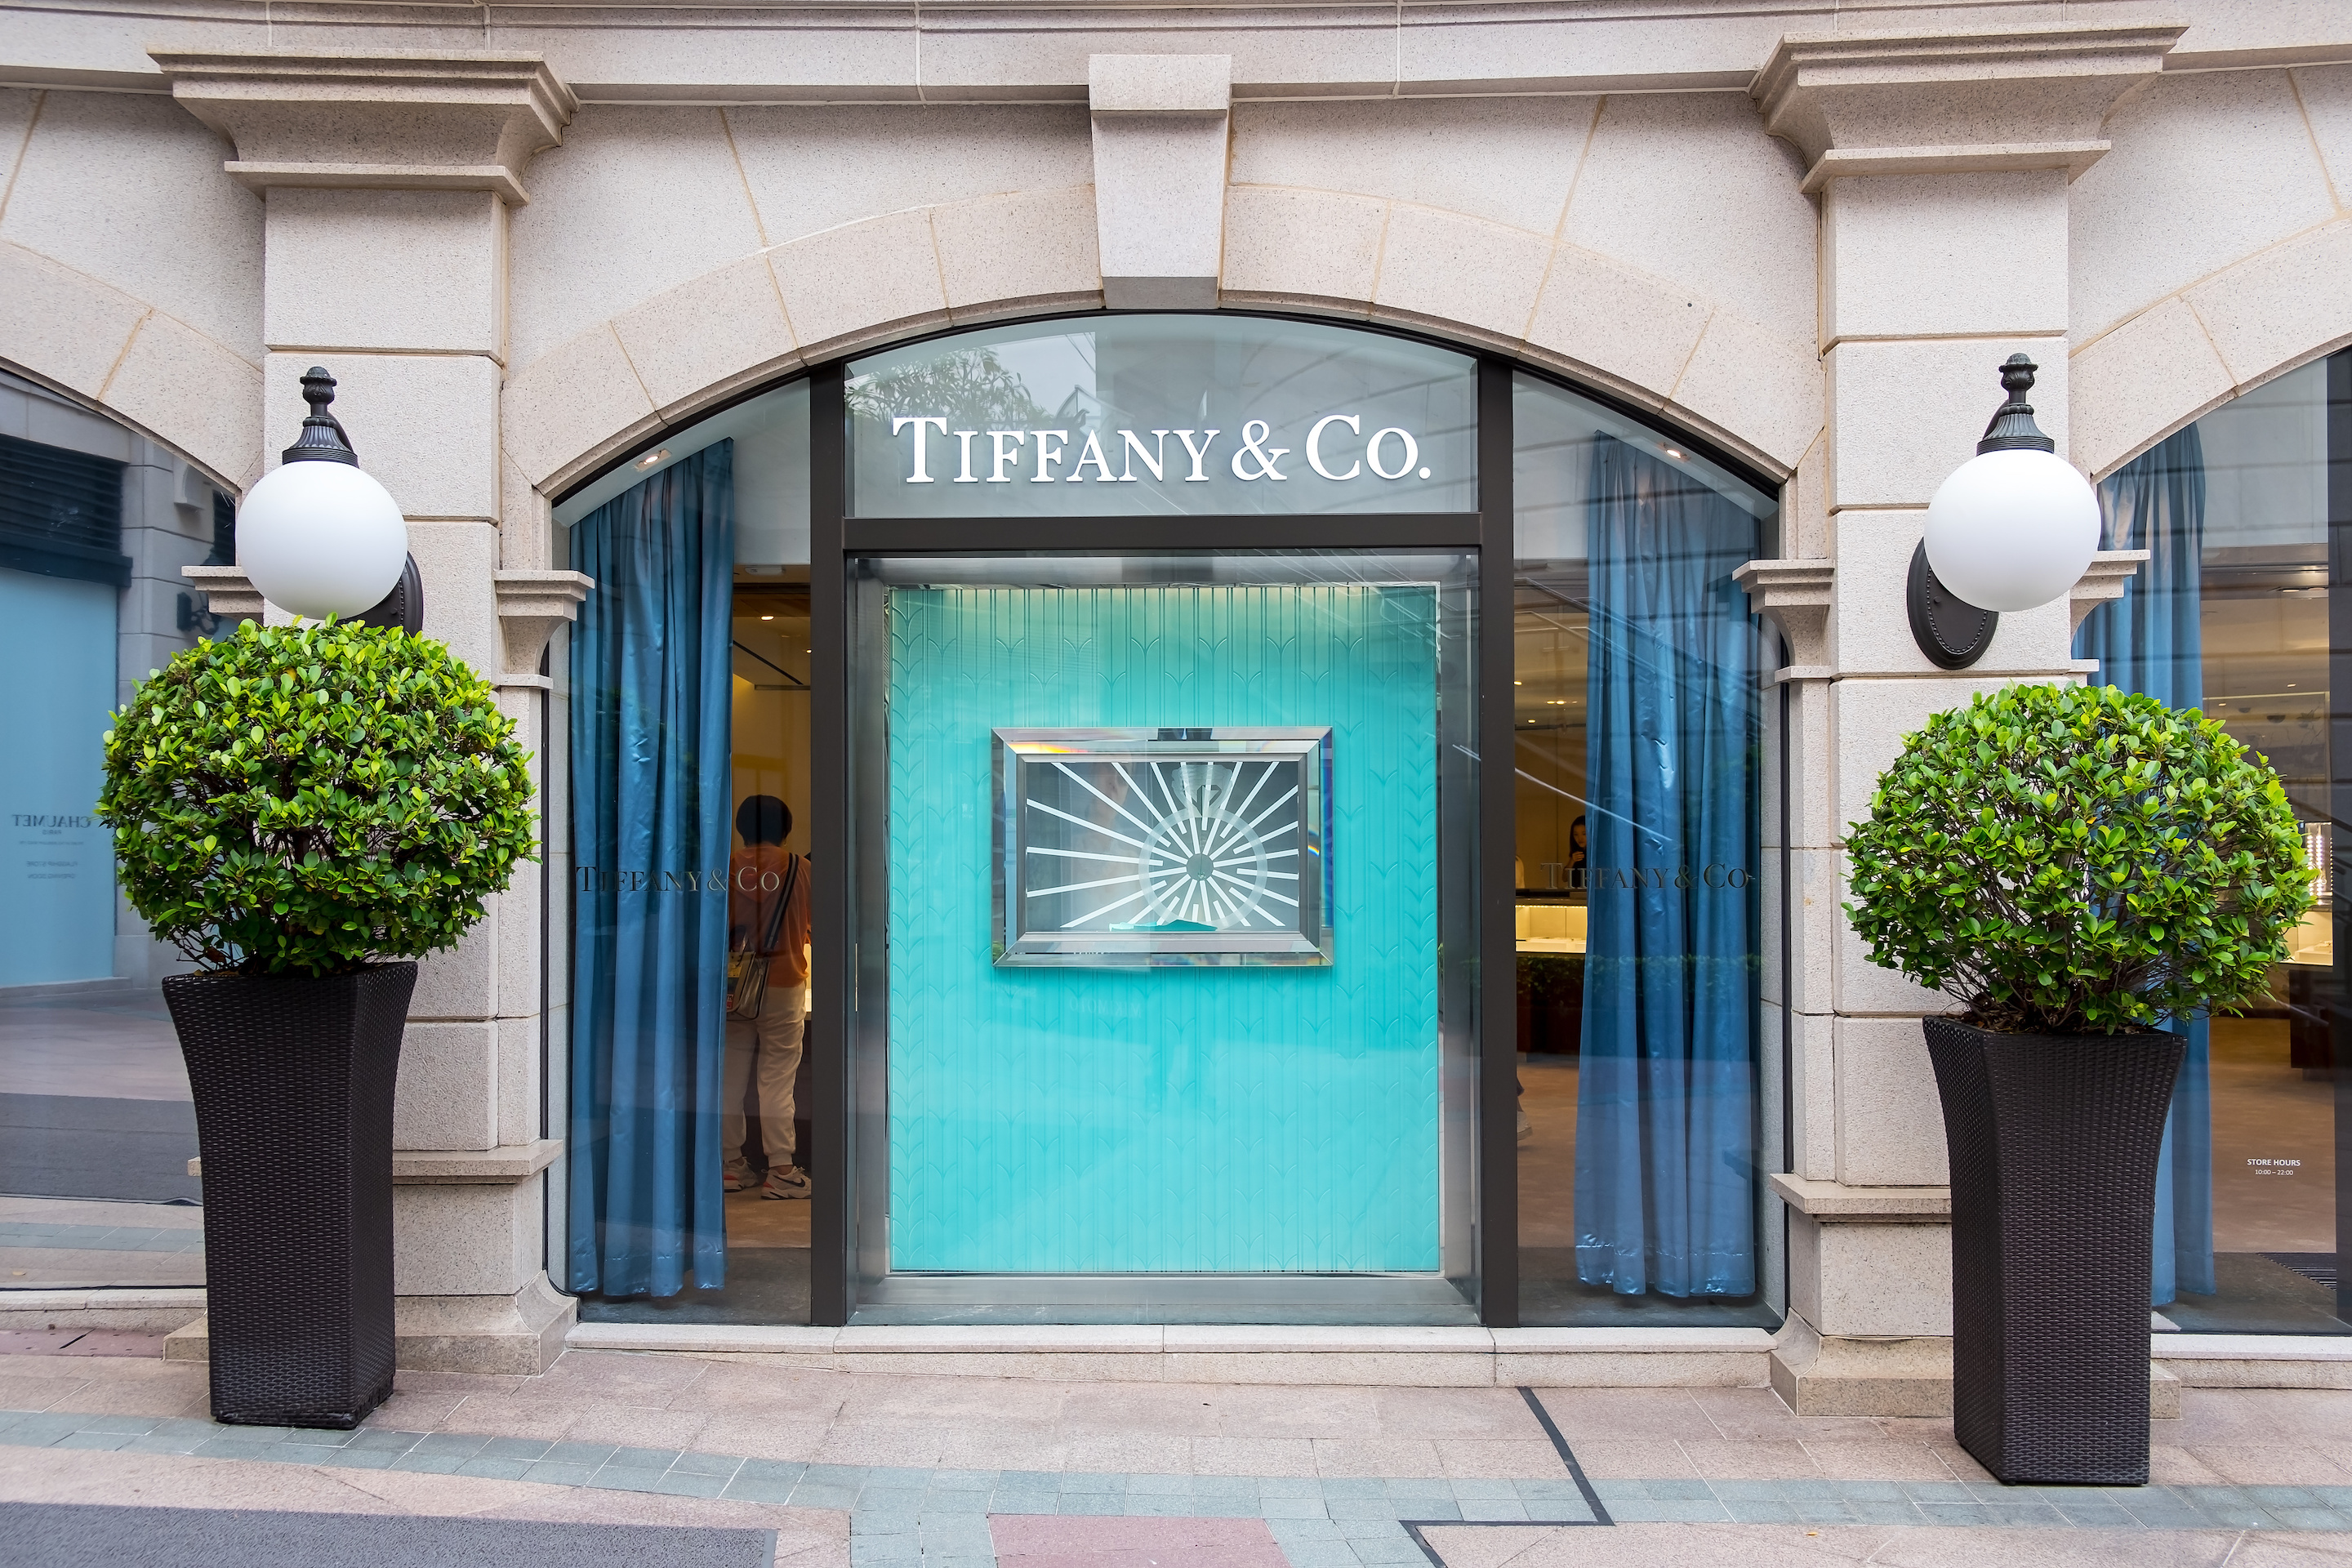 As Tiffany & Co.'s sales in China drop, the company turns to India to open stores. Pictured, Tiffany store in Tsim Sha Tsui, Hong Kong.